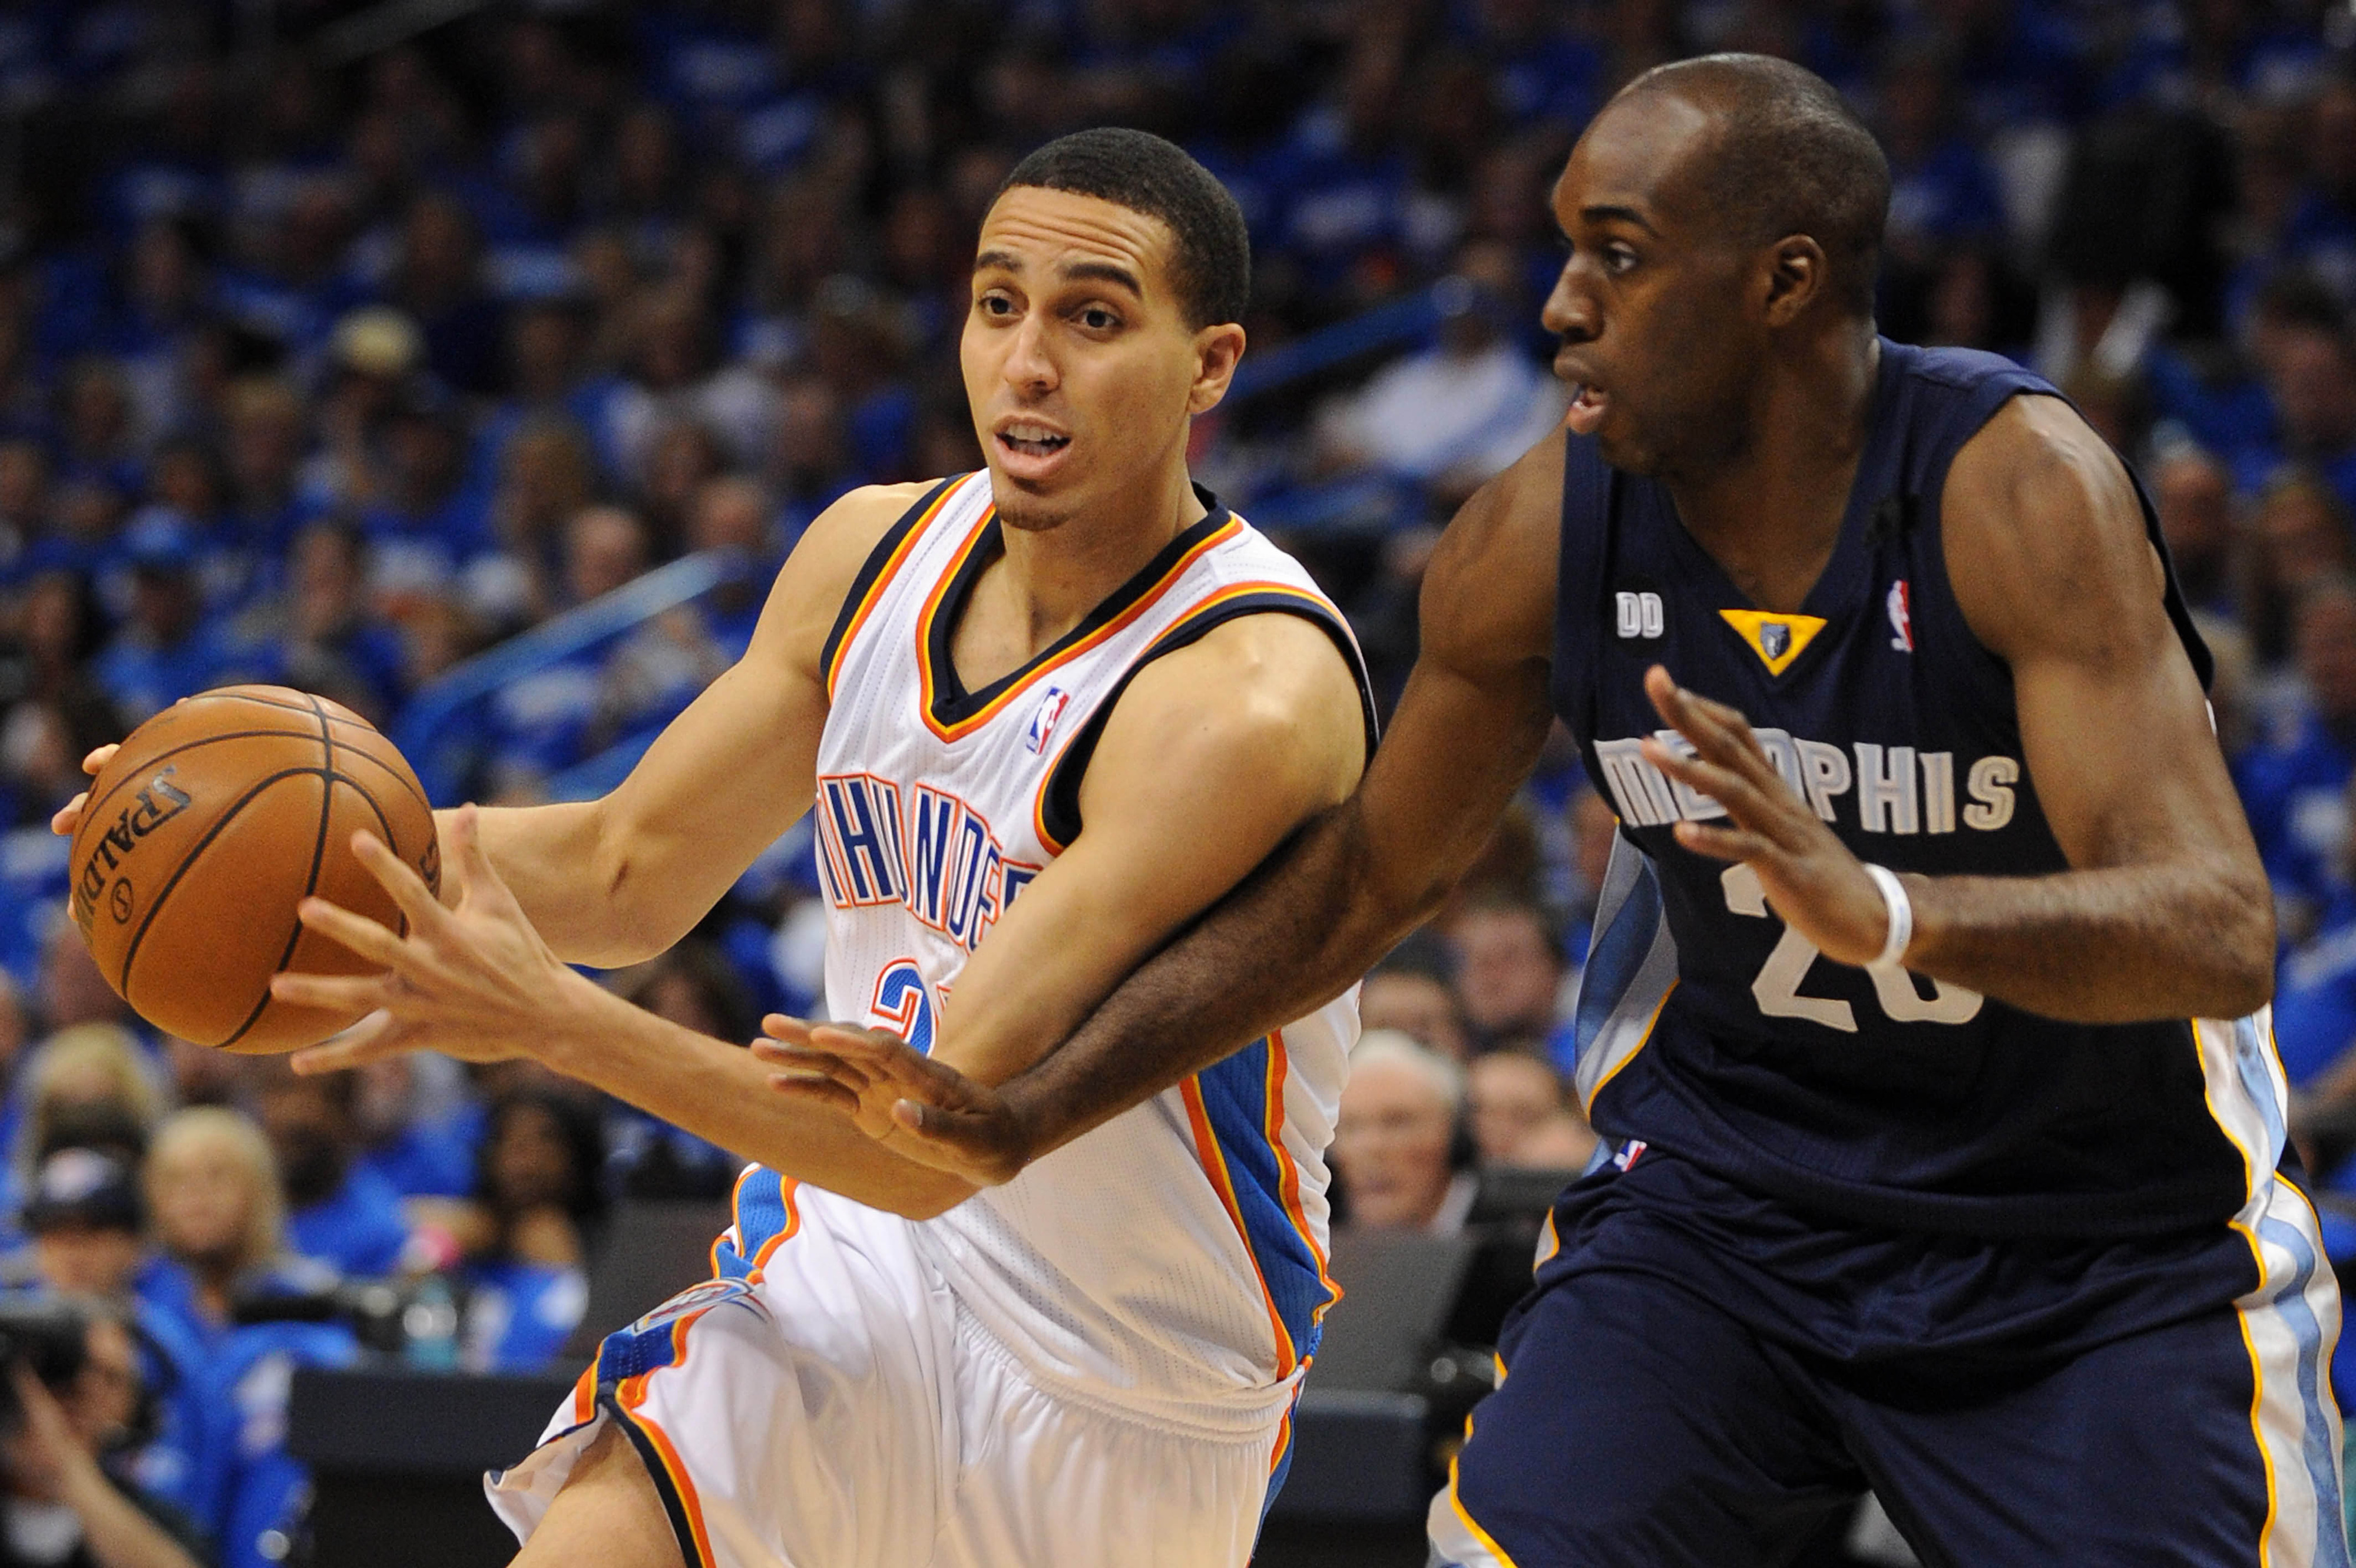 Kevin Martin drives on Memphis Forward Quincy Pondexter